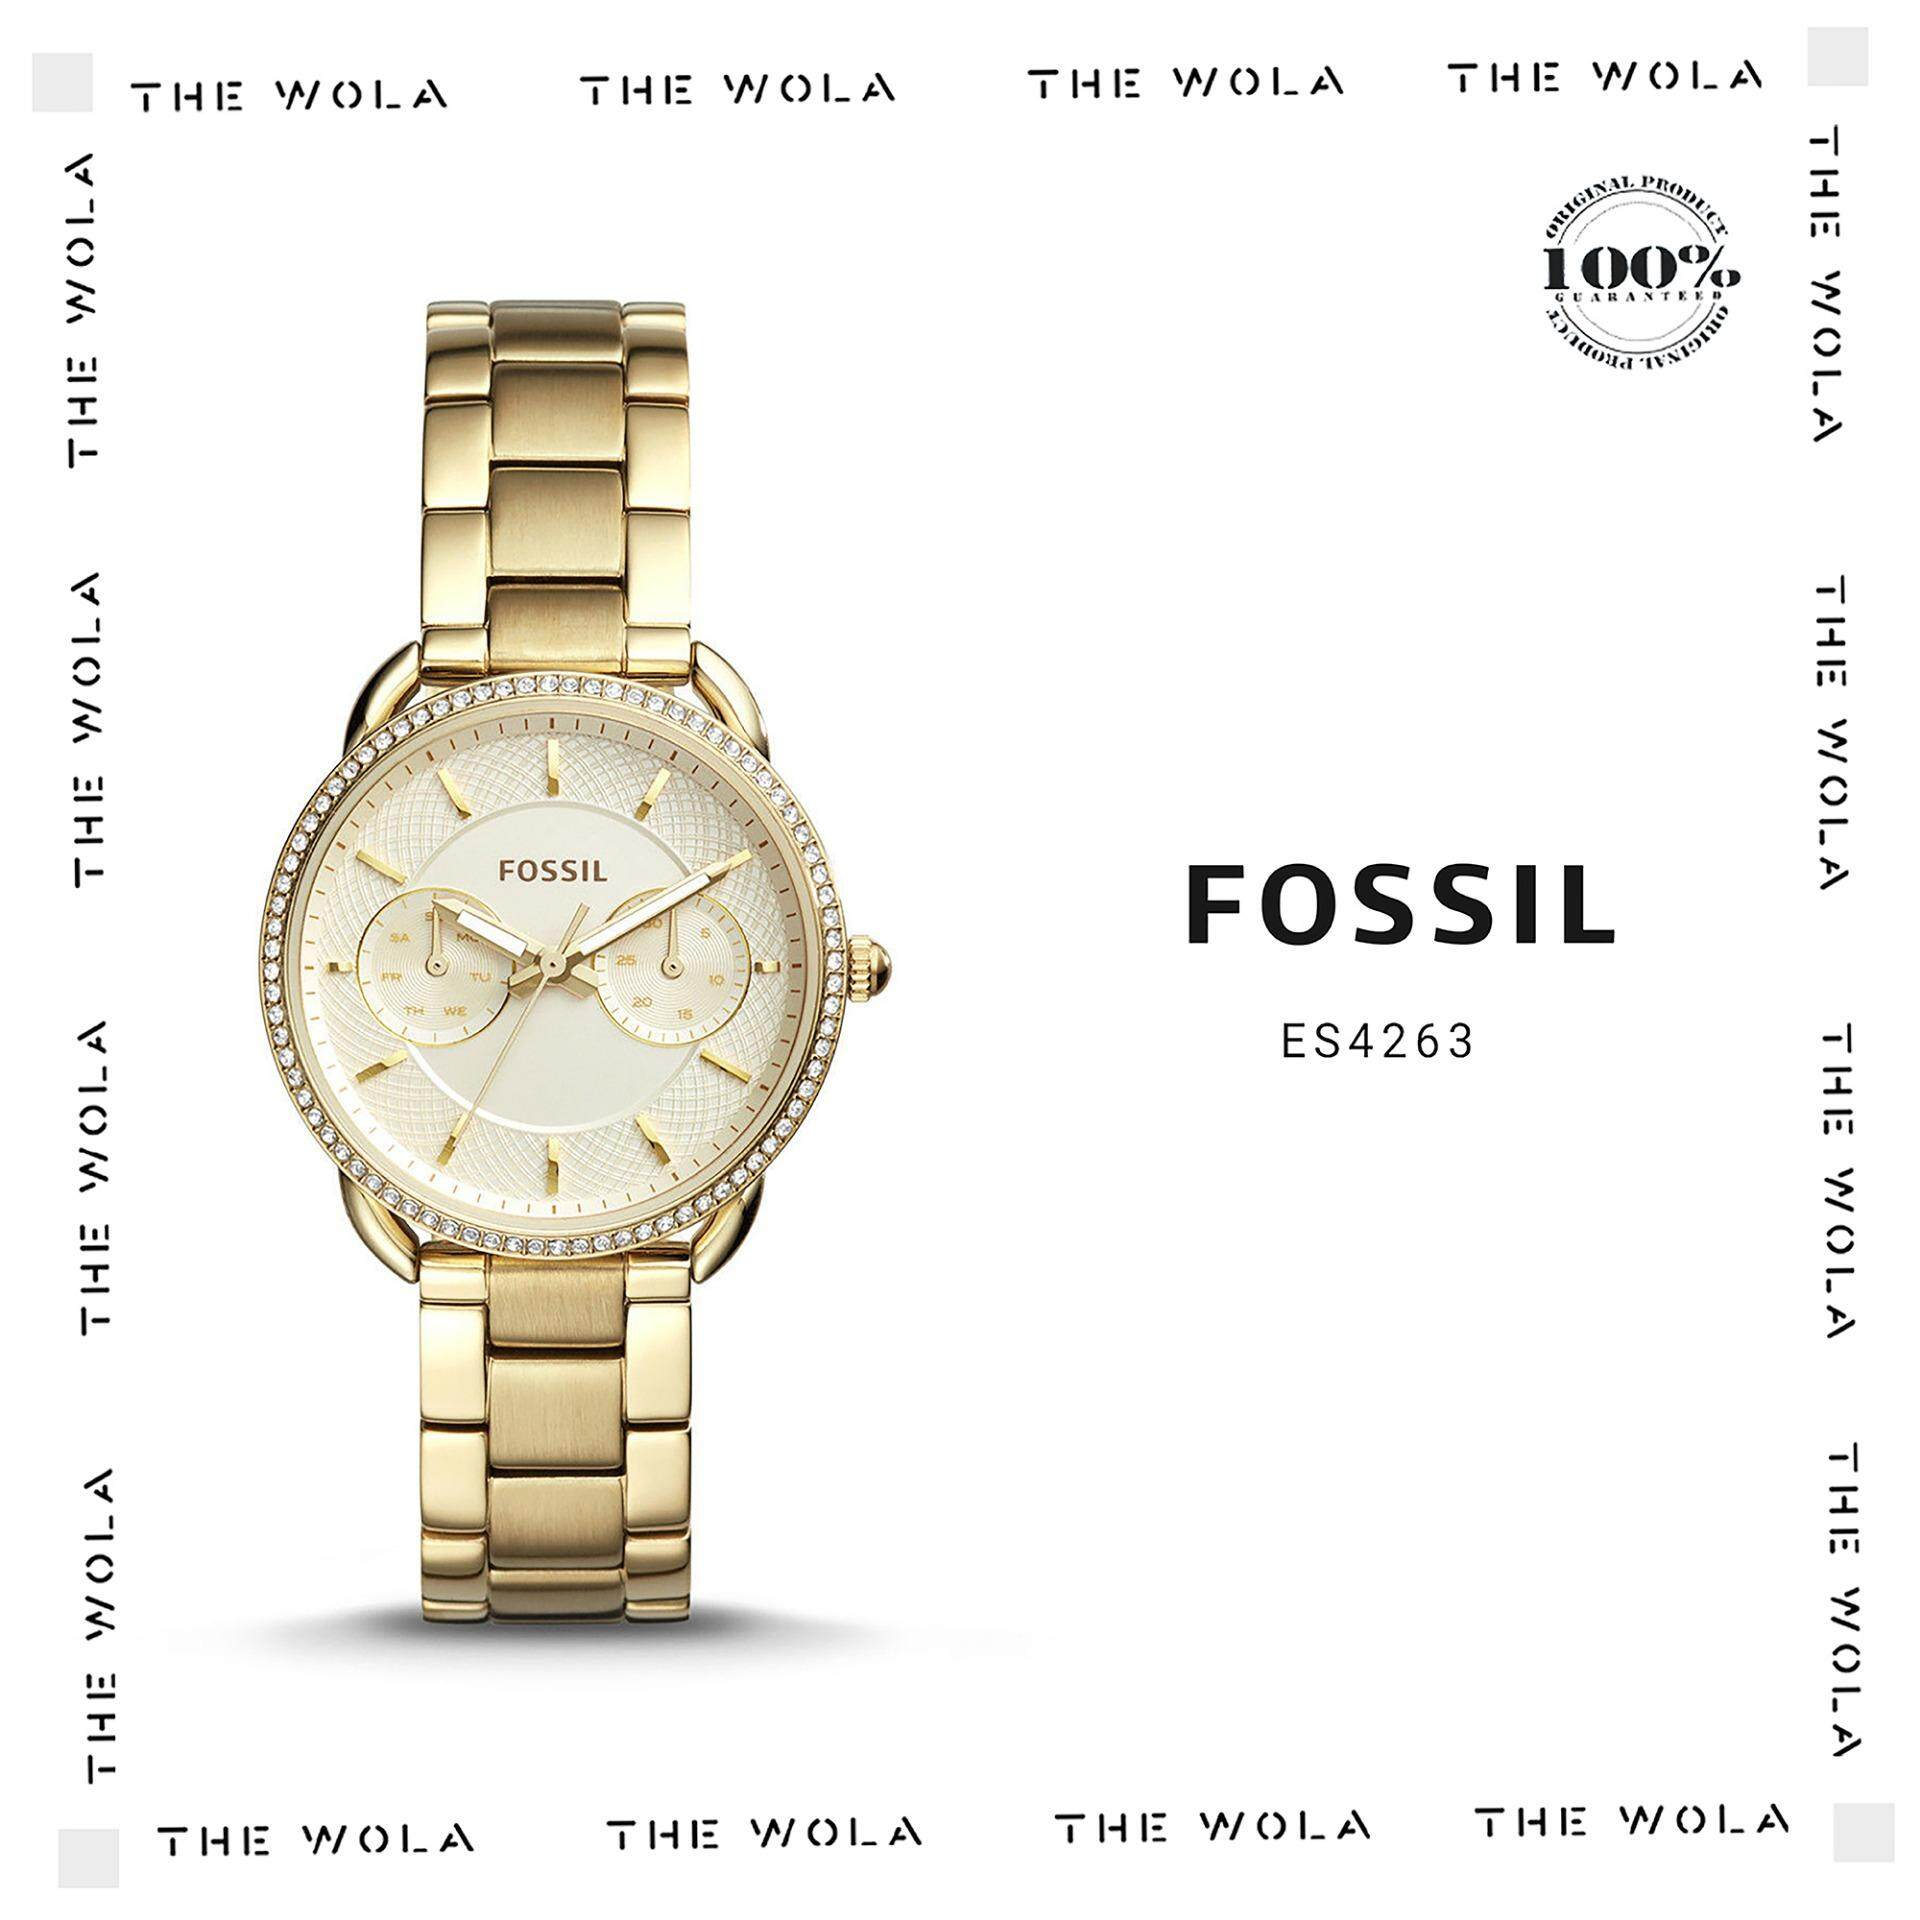 Fossil Products For Men Women The Best Price In Malaysia Me3140 Grant Sport Automatic Skeleton Dial Lugage Leather Casual Watch Es4263 Original Genuine 2 Years Warranty